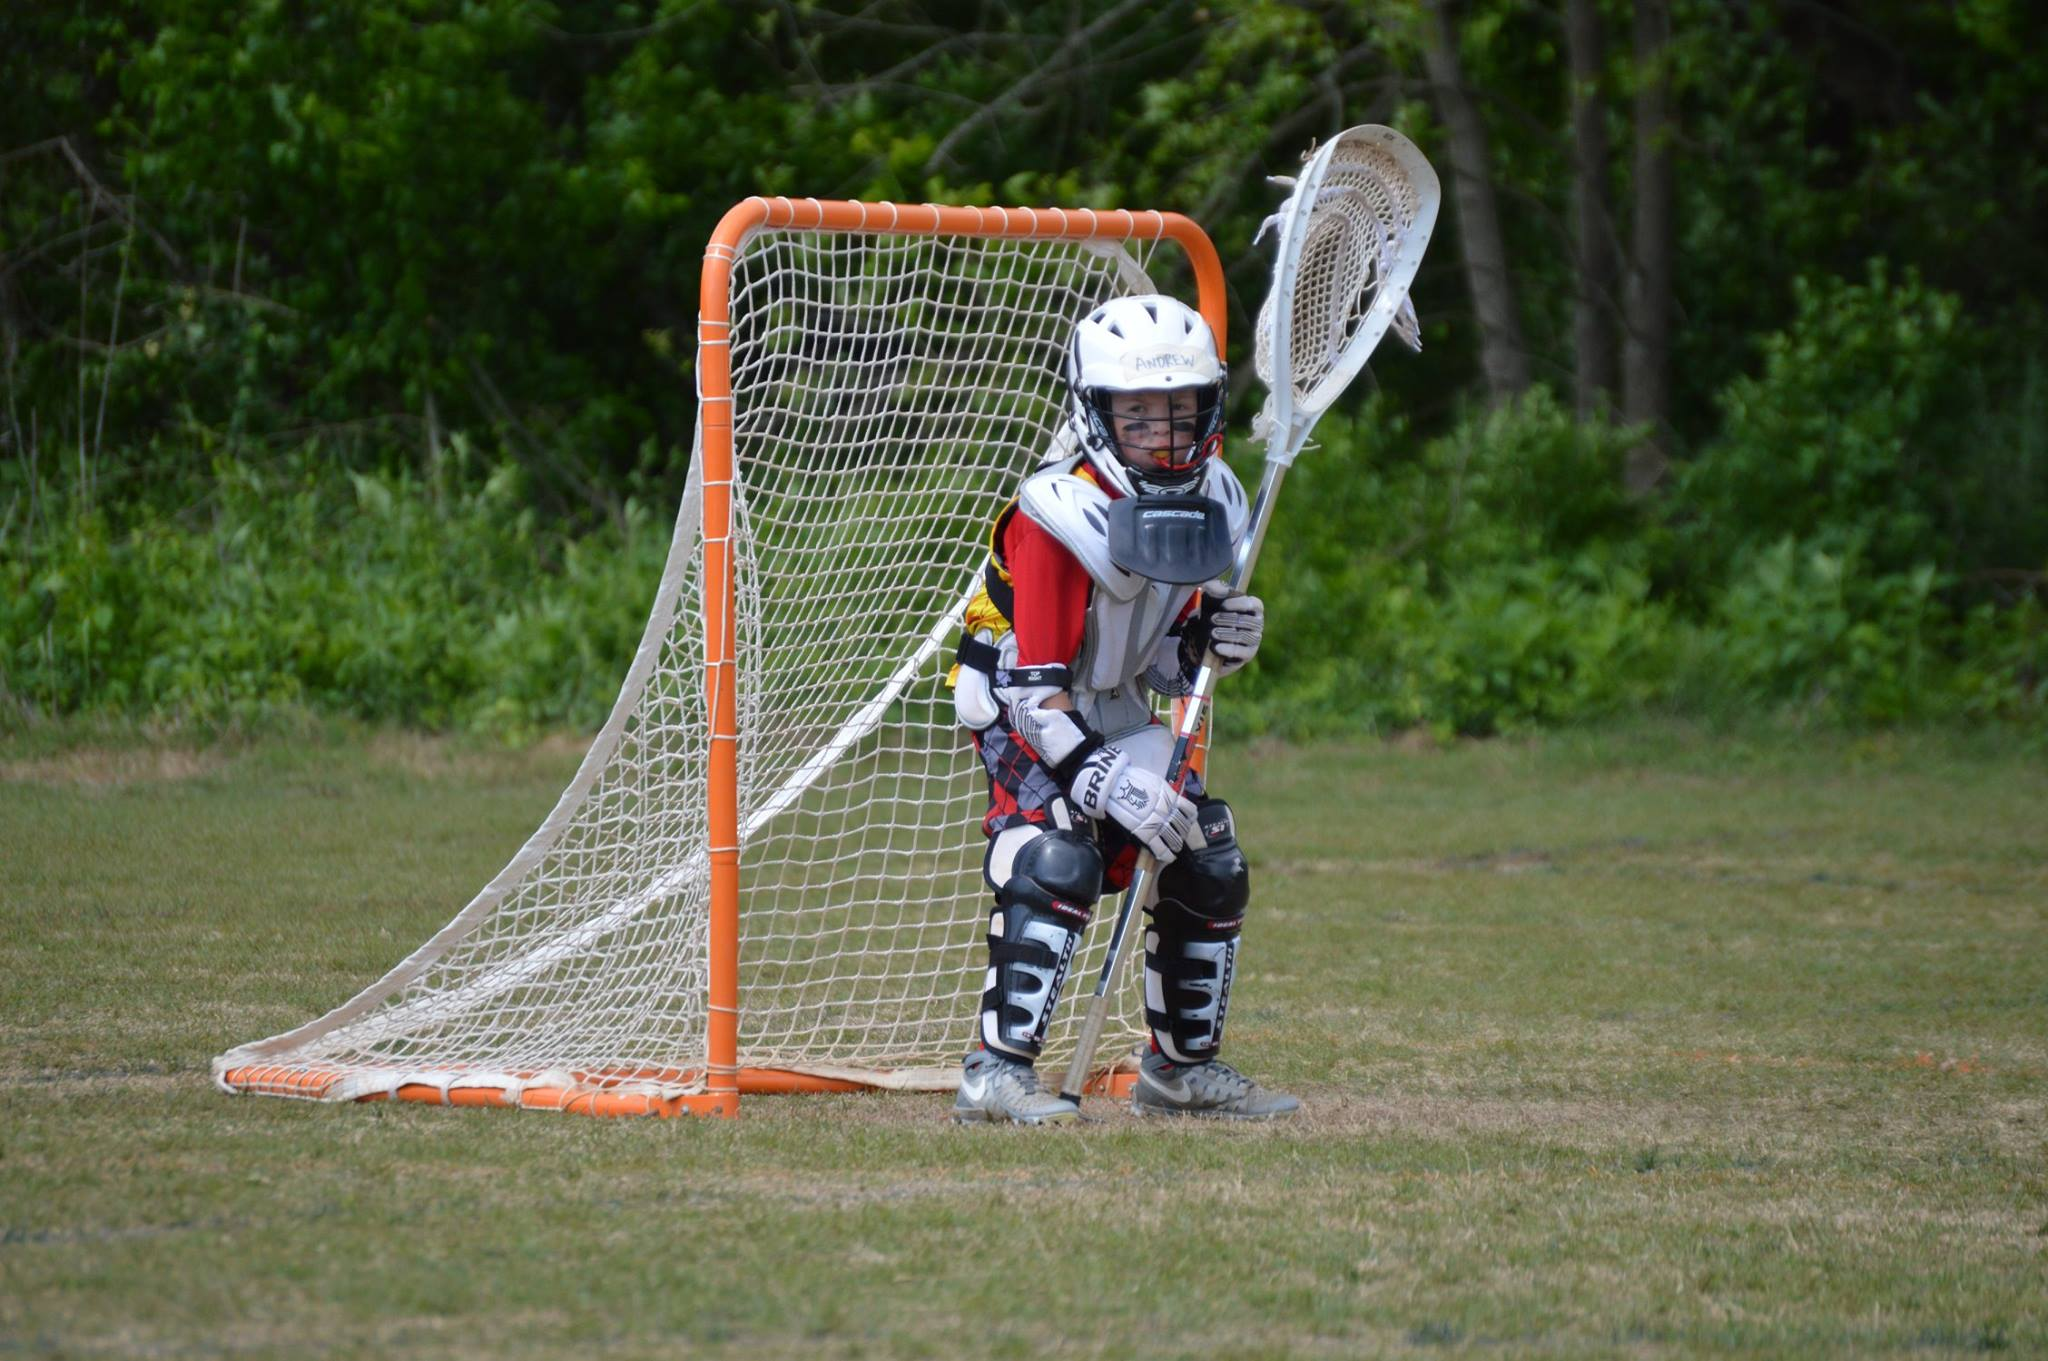 Picture of Lacrosse